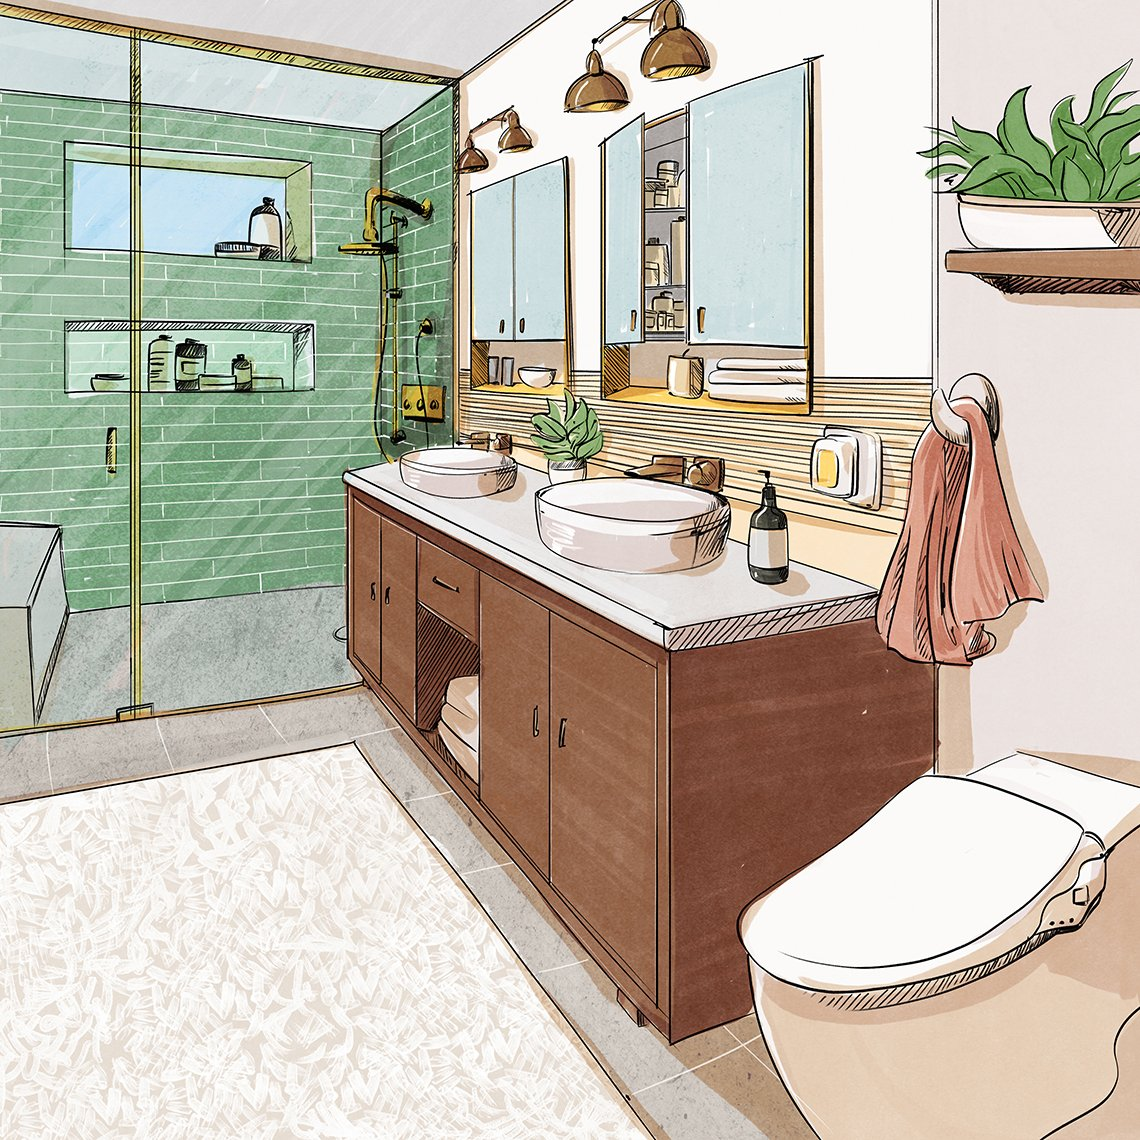 design sketch of a finished bathroom